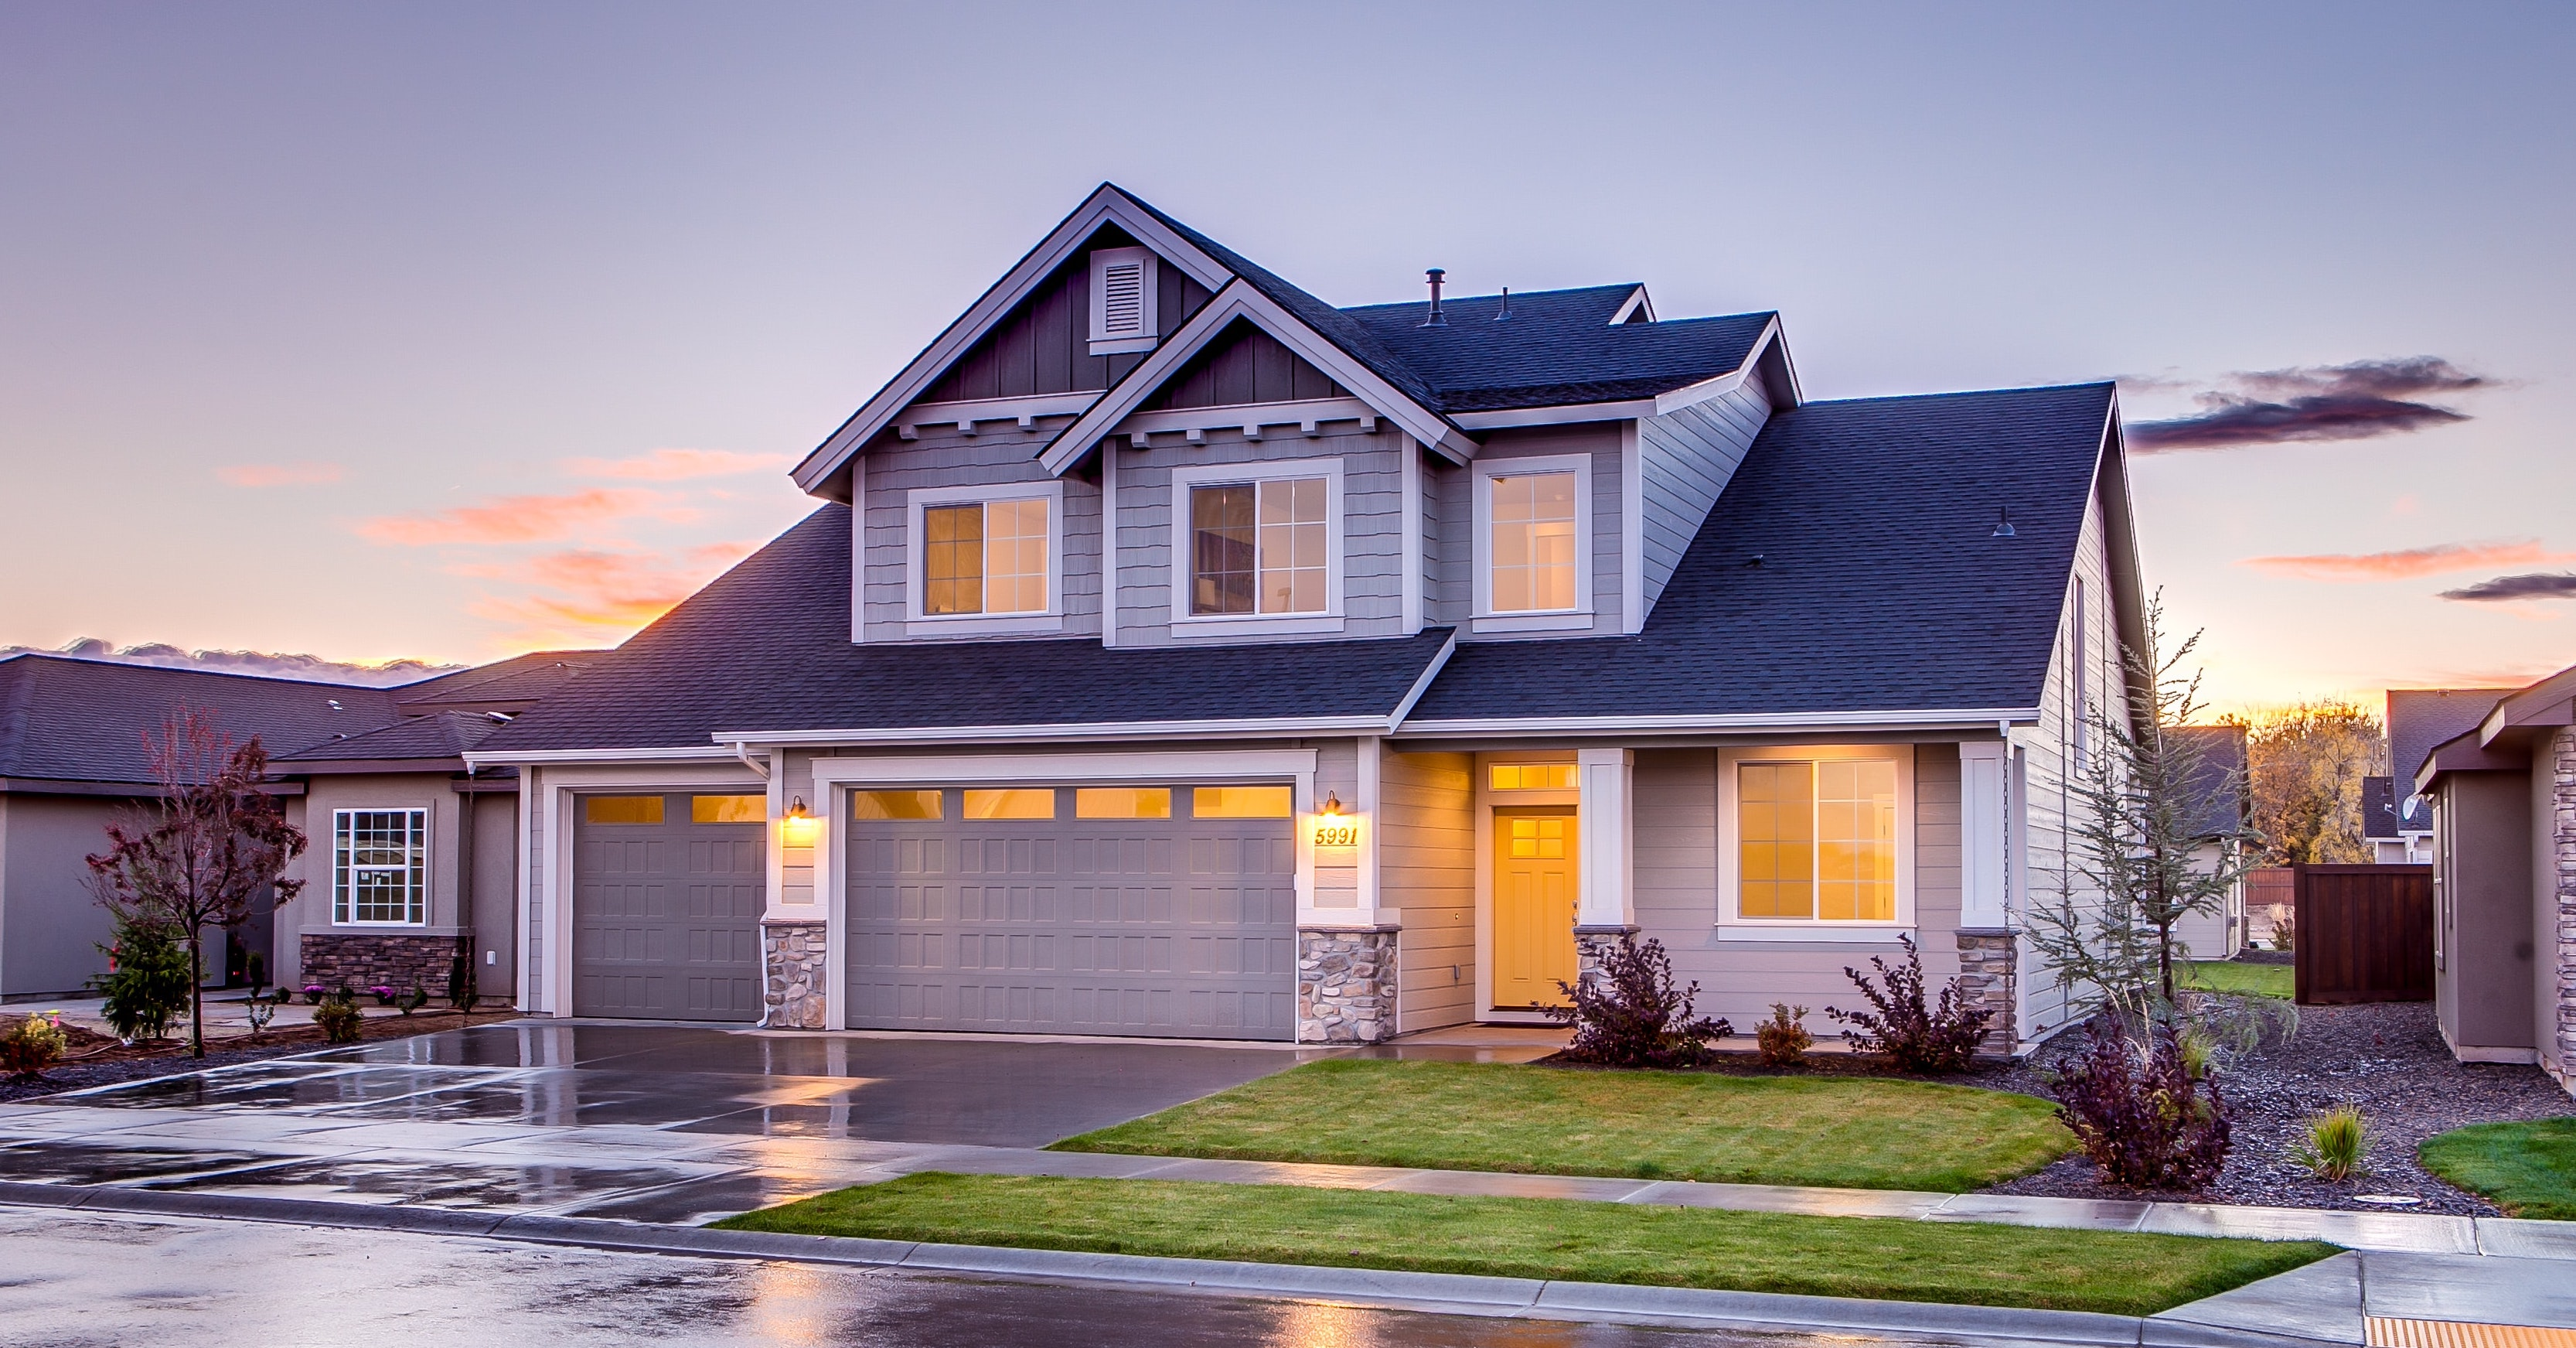 Home Shoppers Beware These 3 Hidden Home Expenses